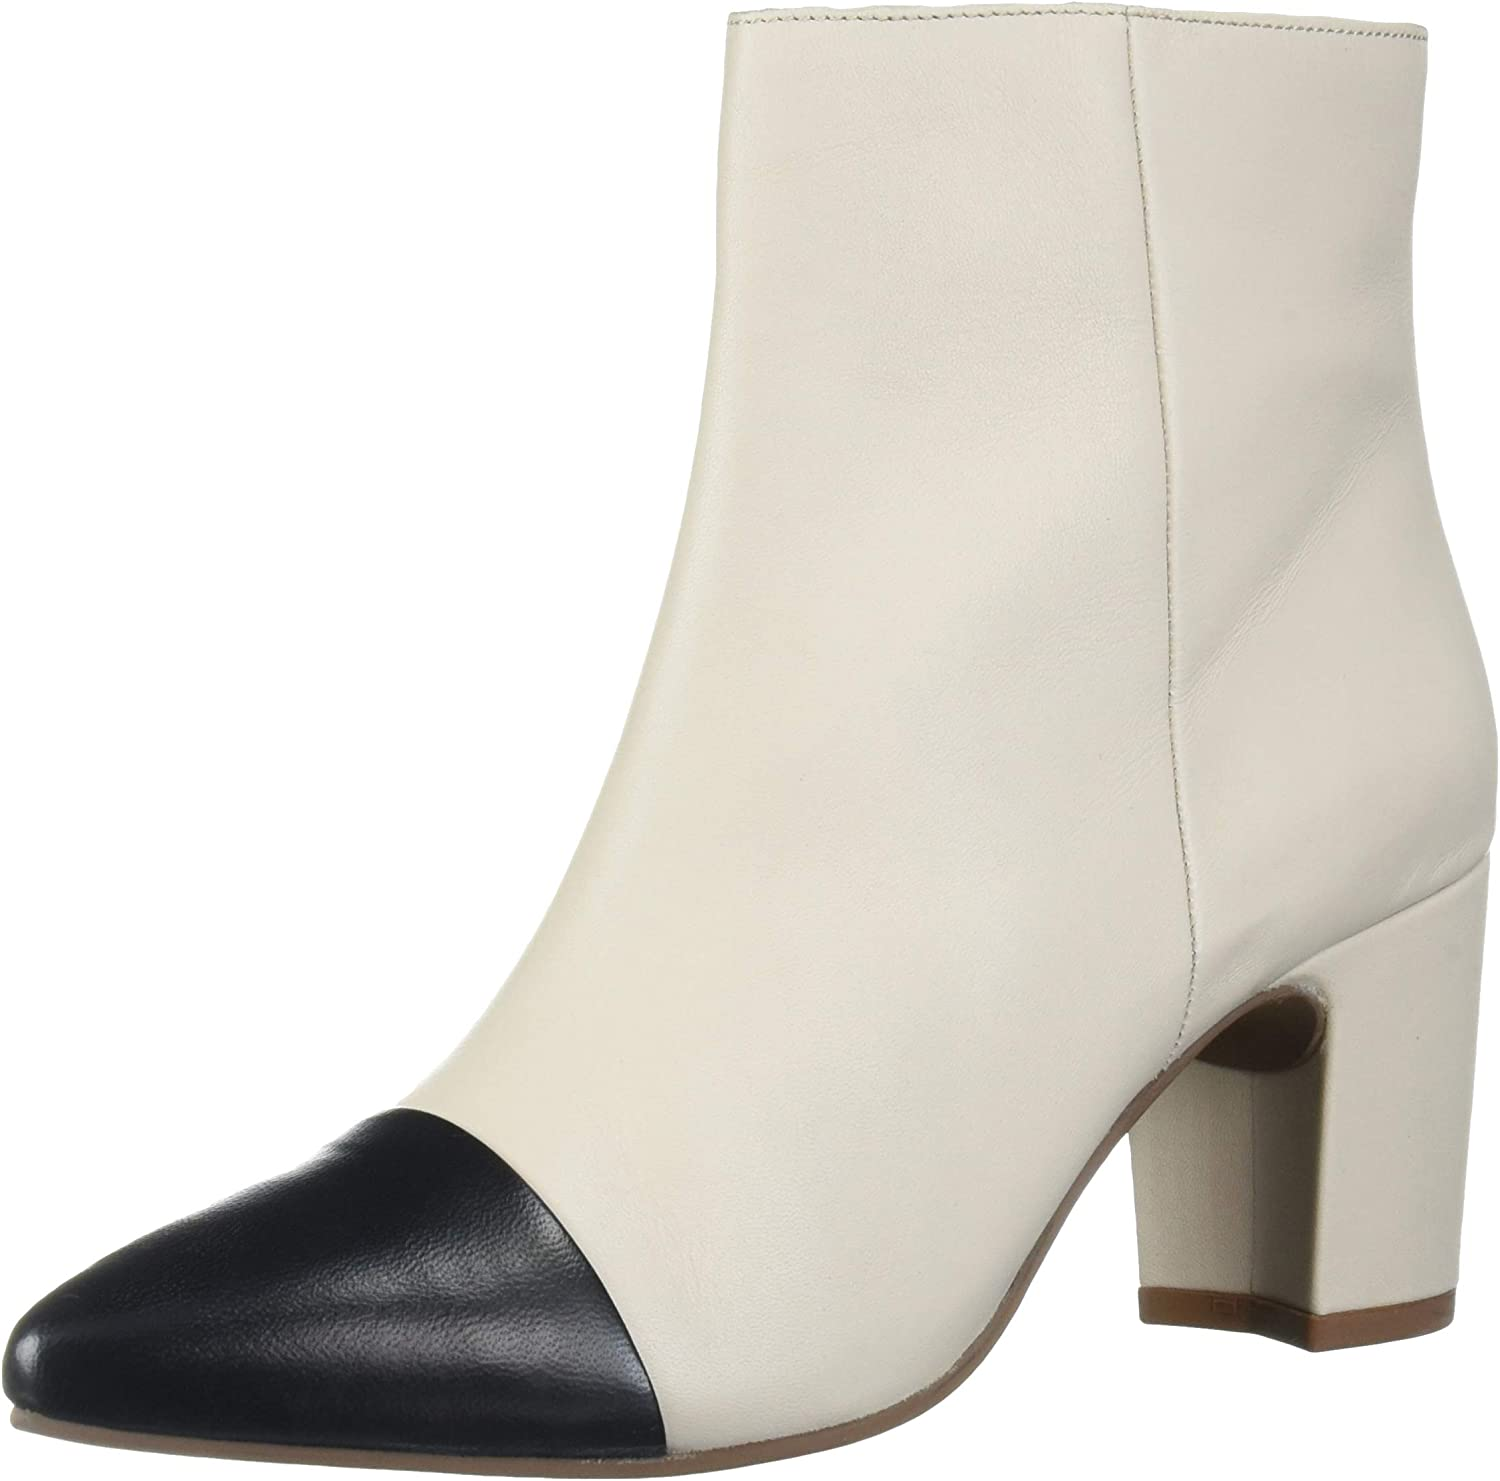 Seychelles Women's No One Max 69% OFF Like Translated Boot You Ankle